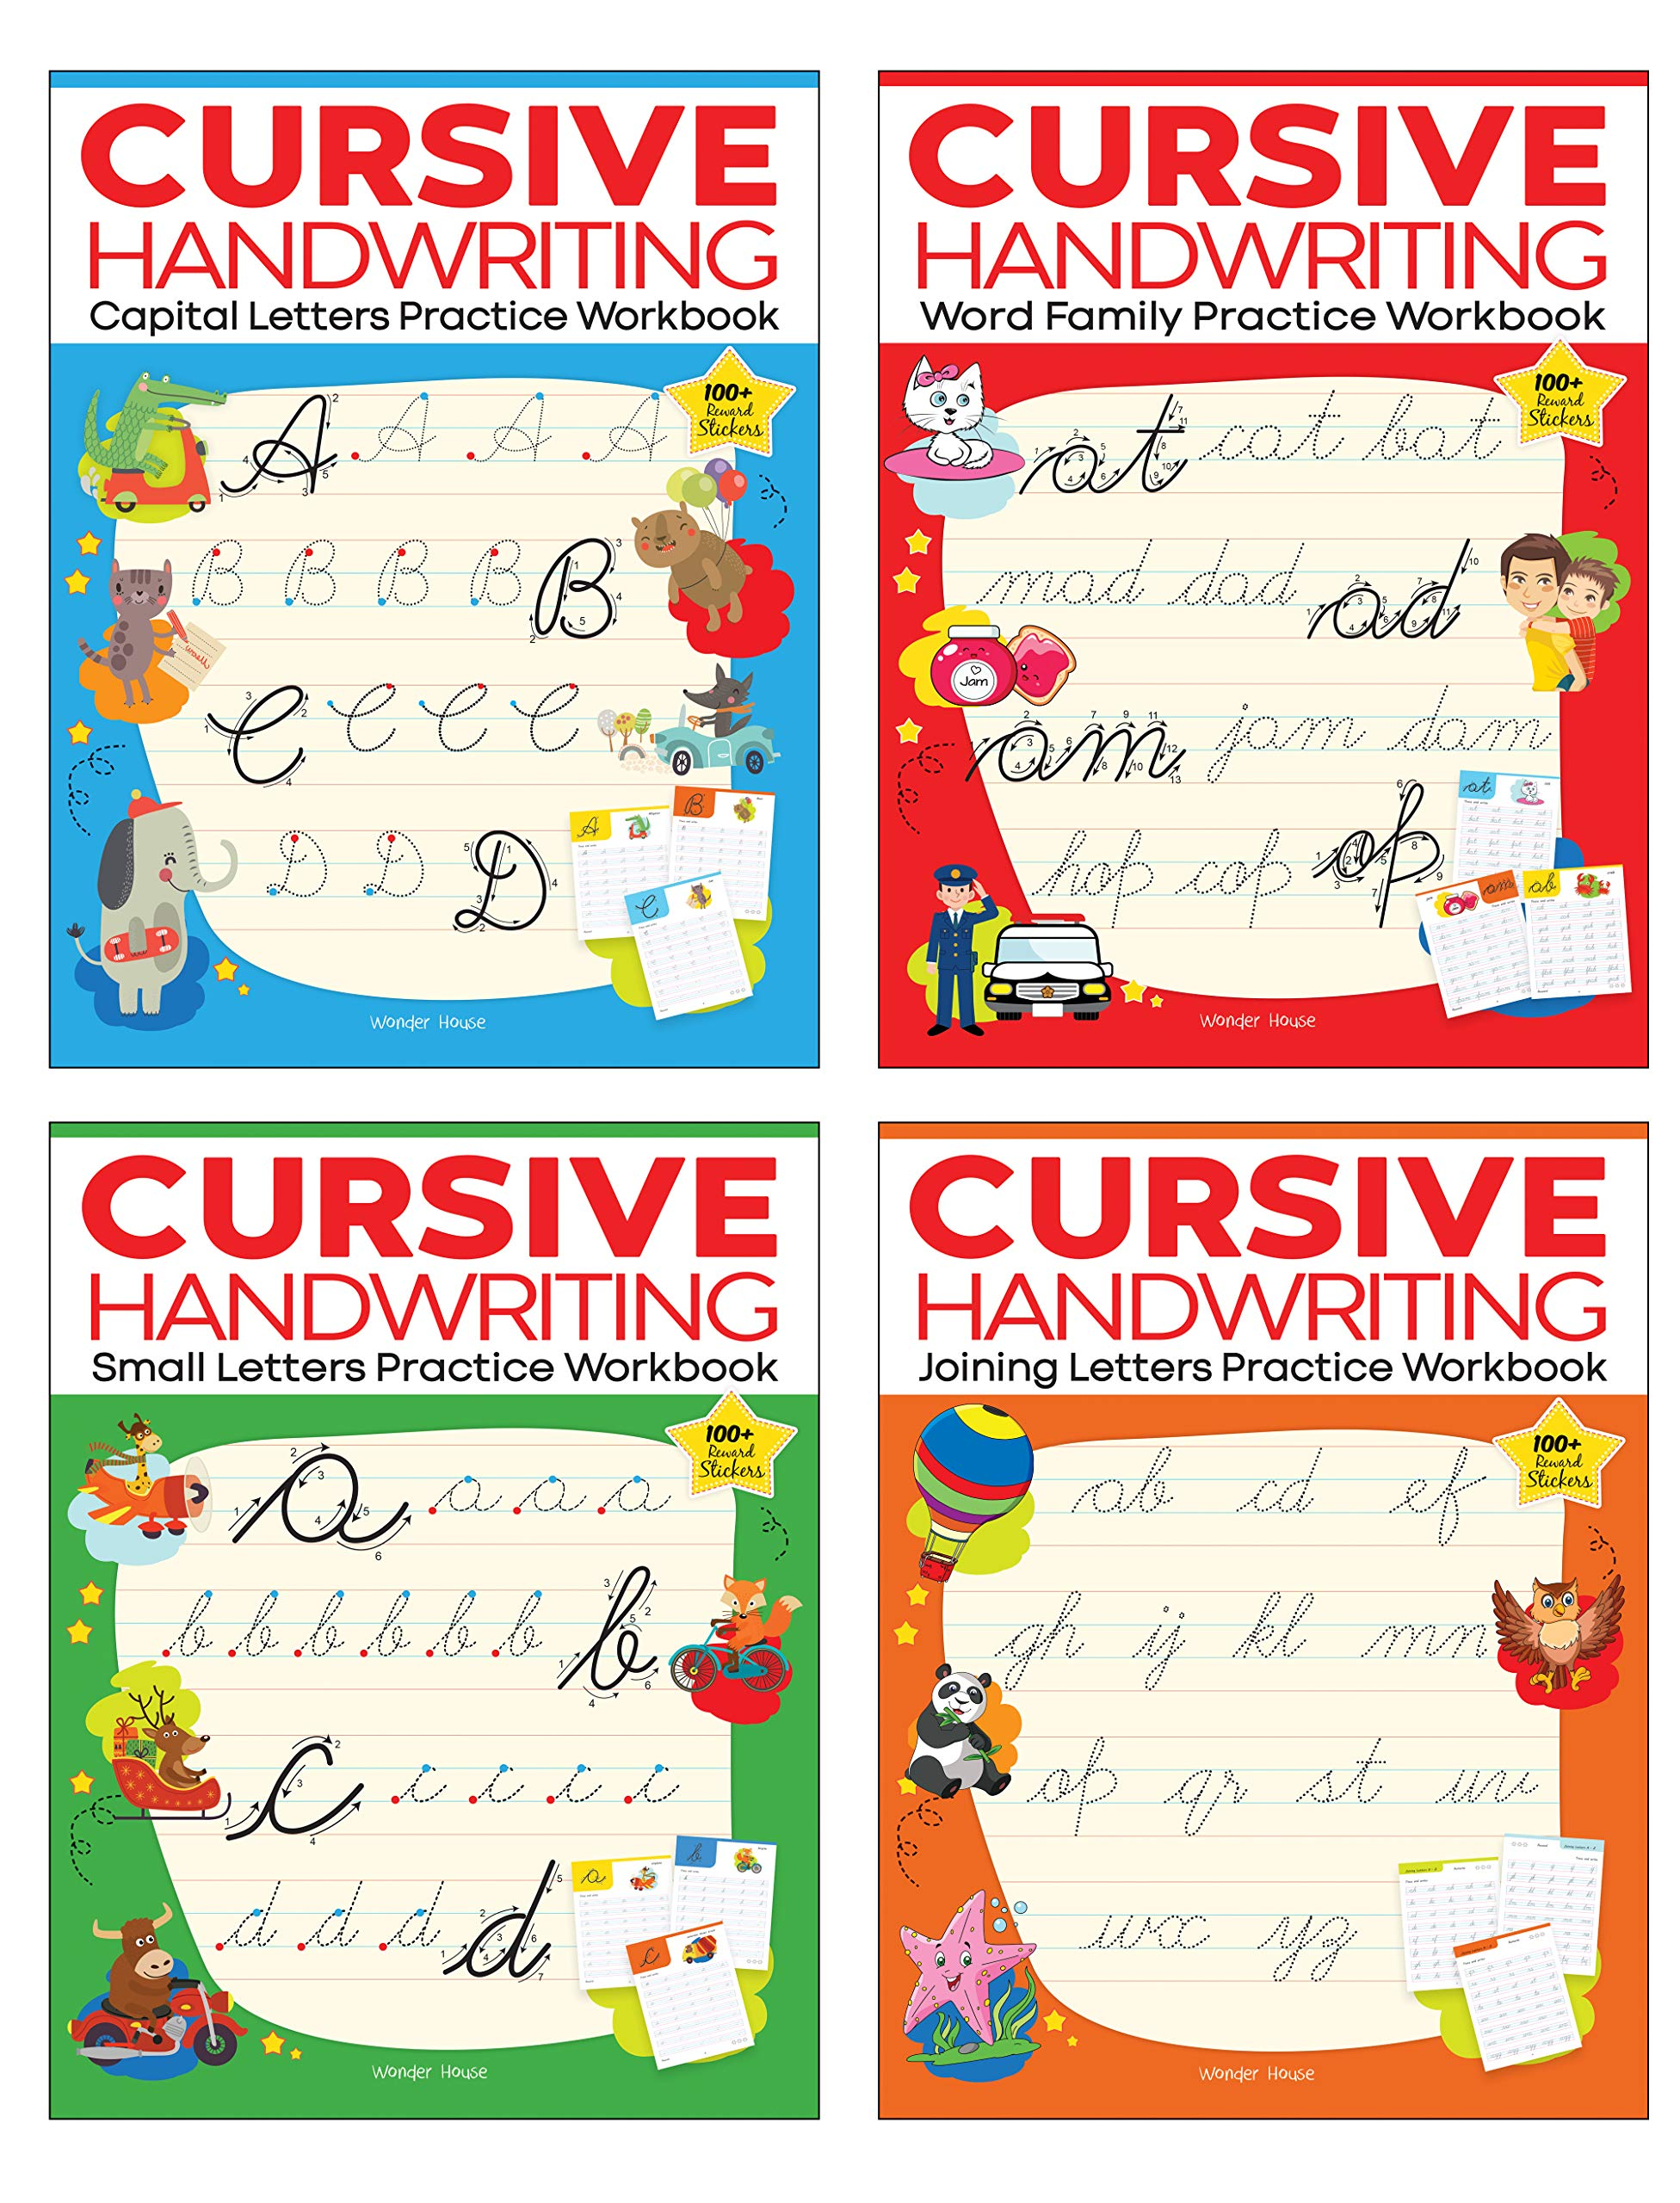 Cursive Handwriting – Small Letters, Capital Letters, Joining Letters and Word Family : Level 1 Practice Workbooks For Children (Set of 4 Books)